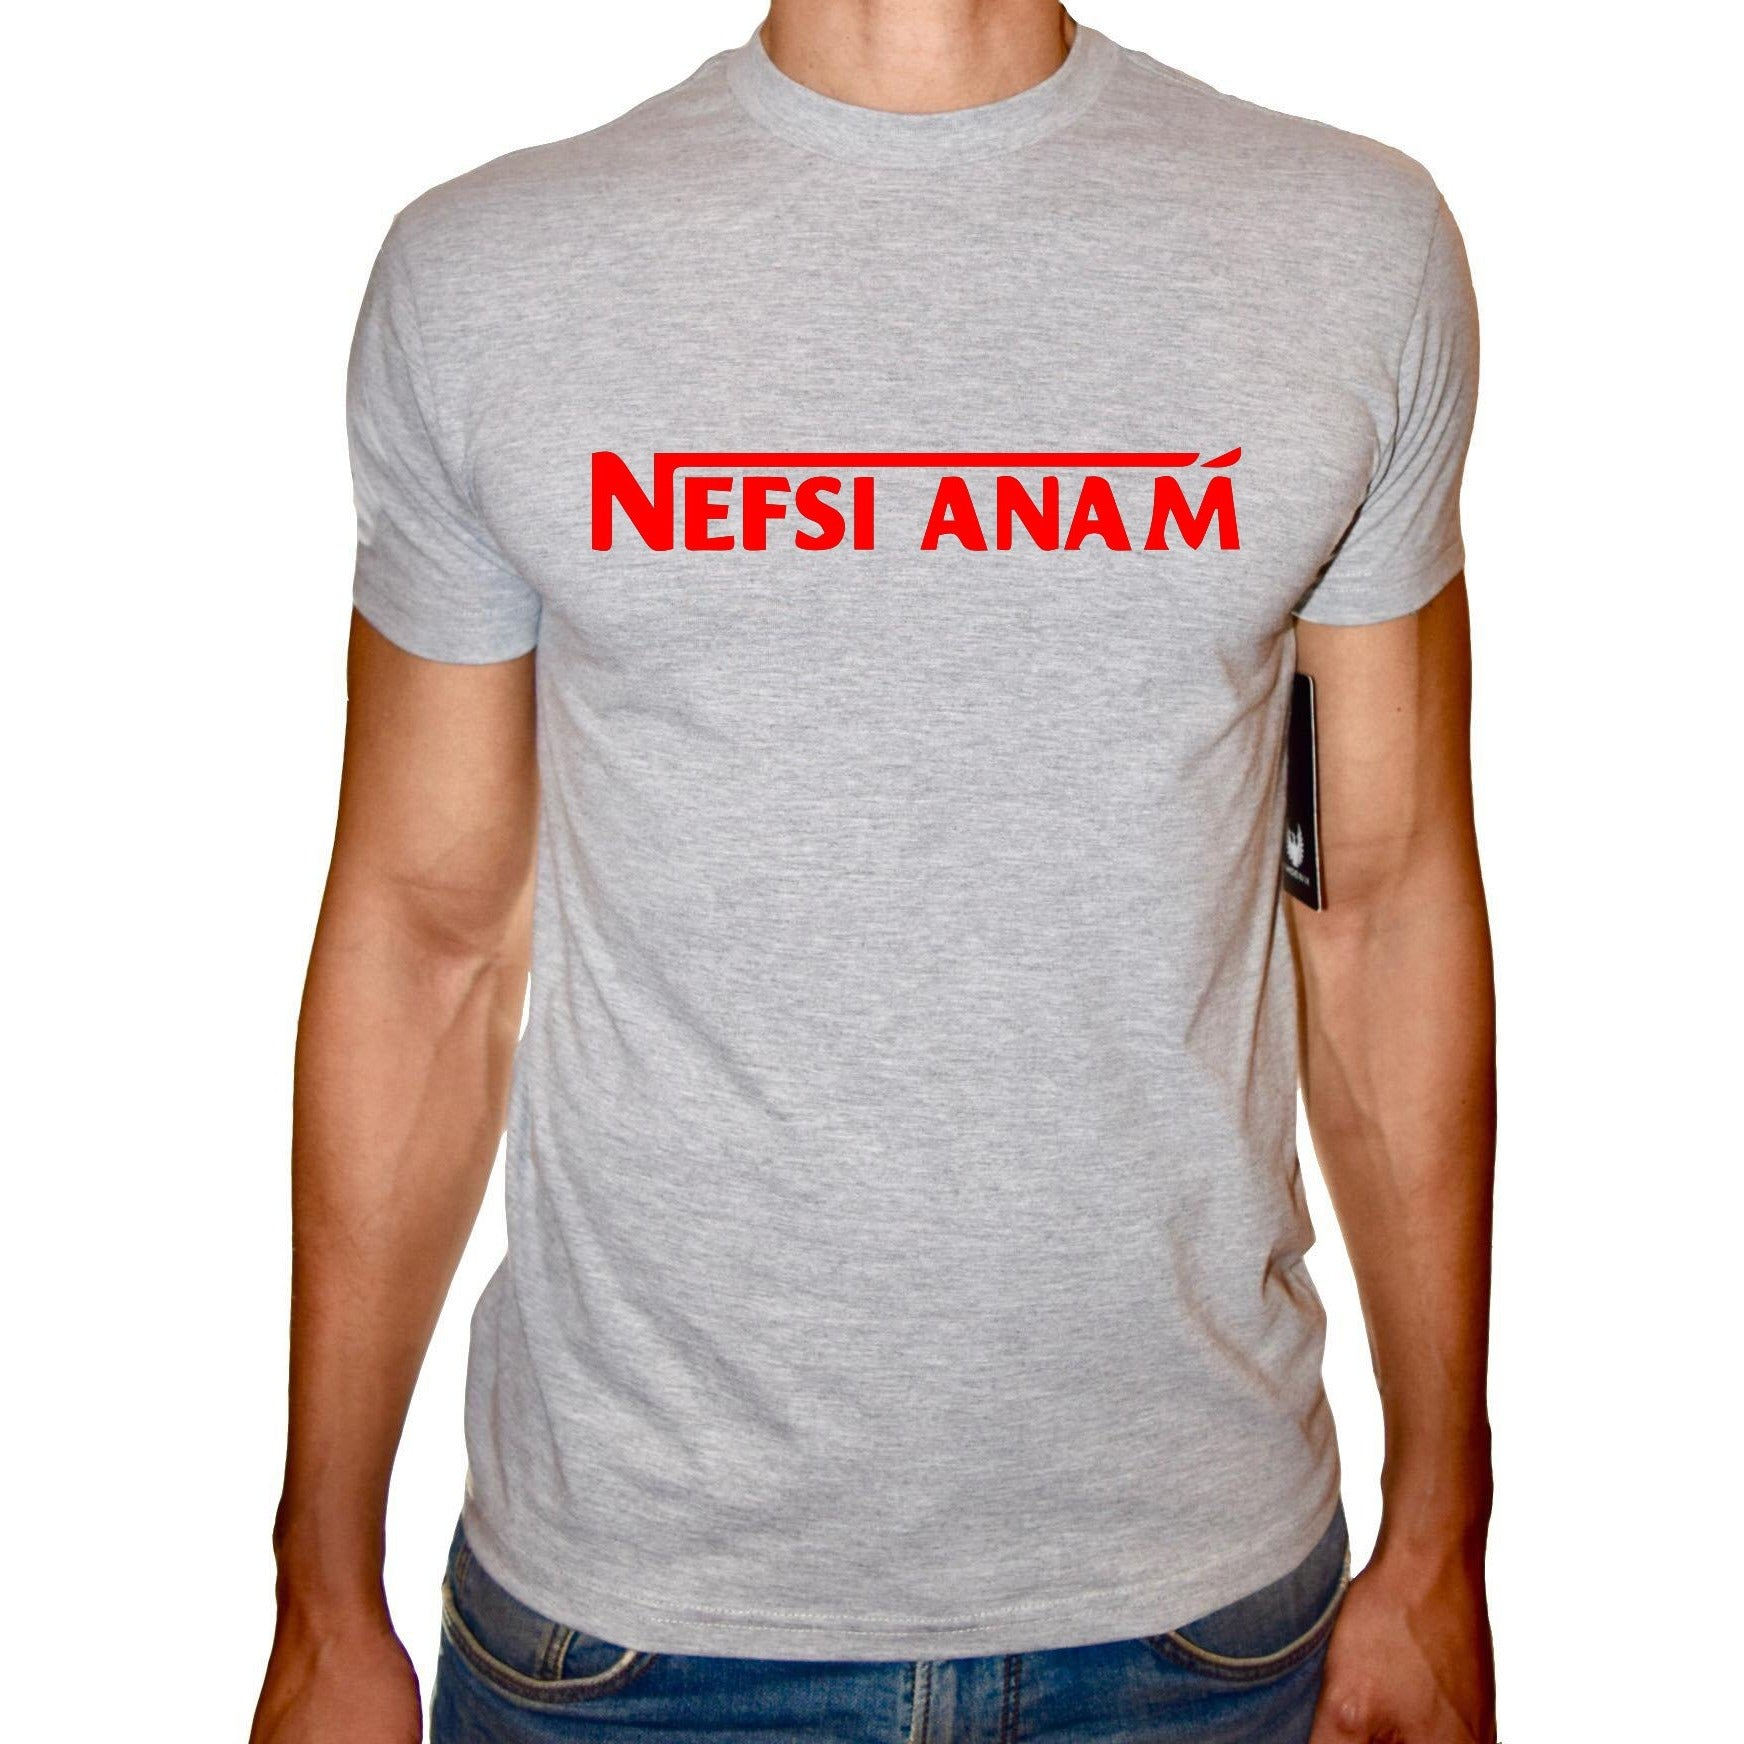 Phoenix GREY Round Neck Printed T-Shirt Men(nefsi anam)